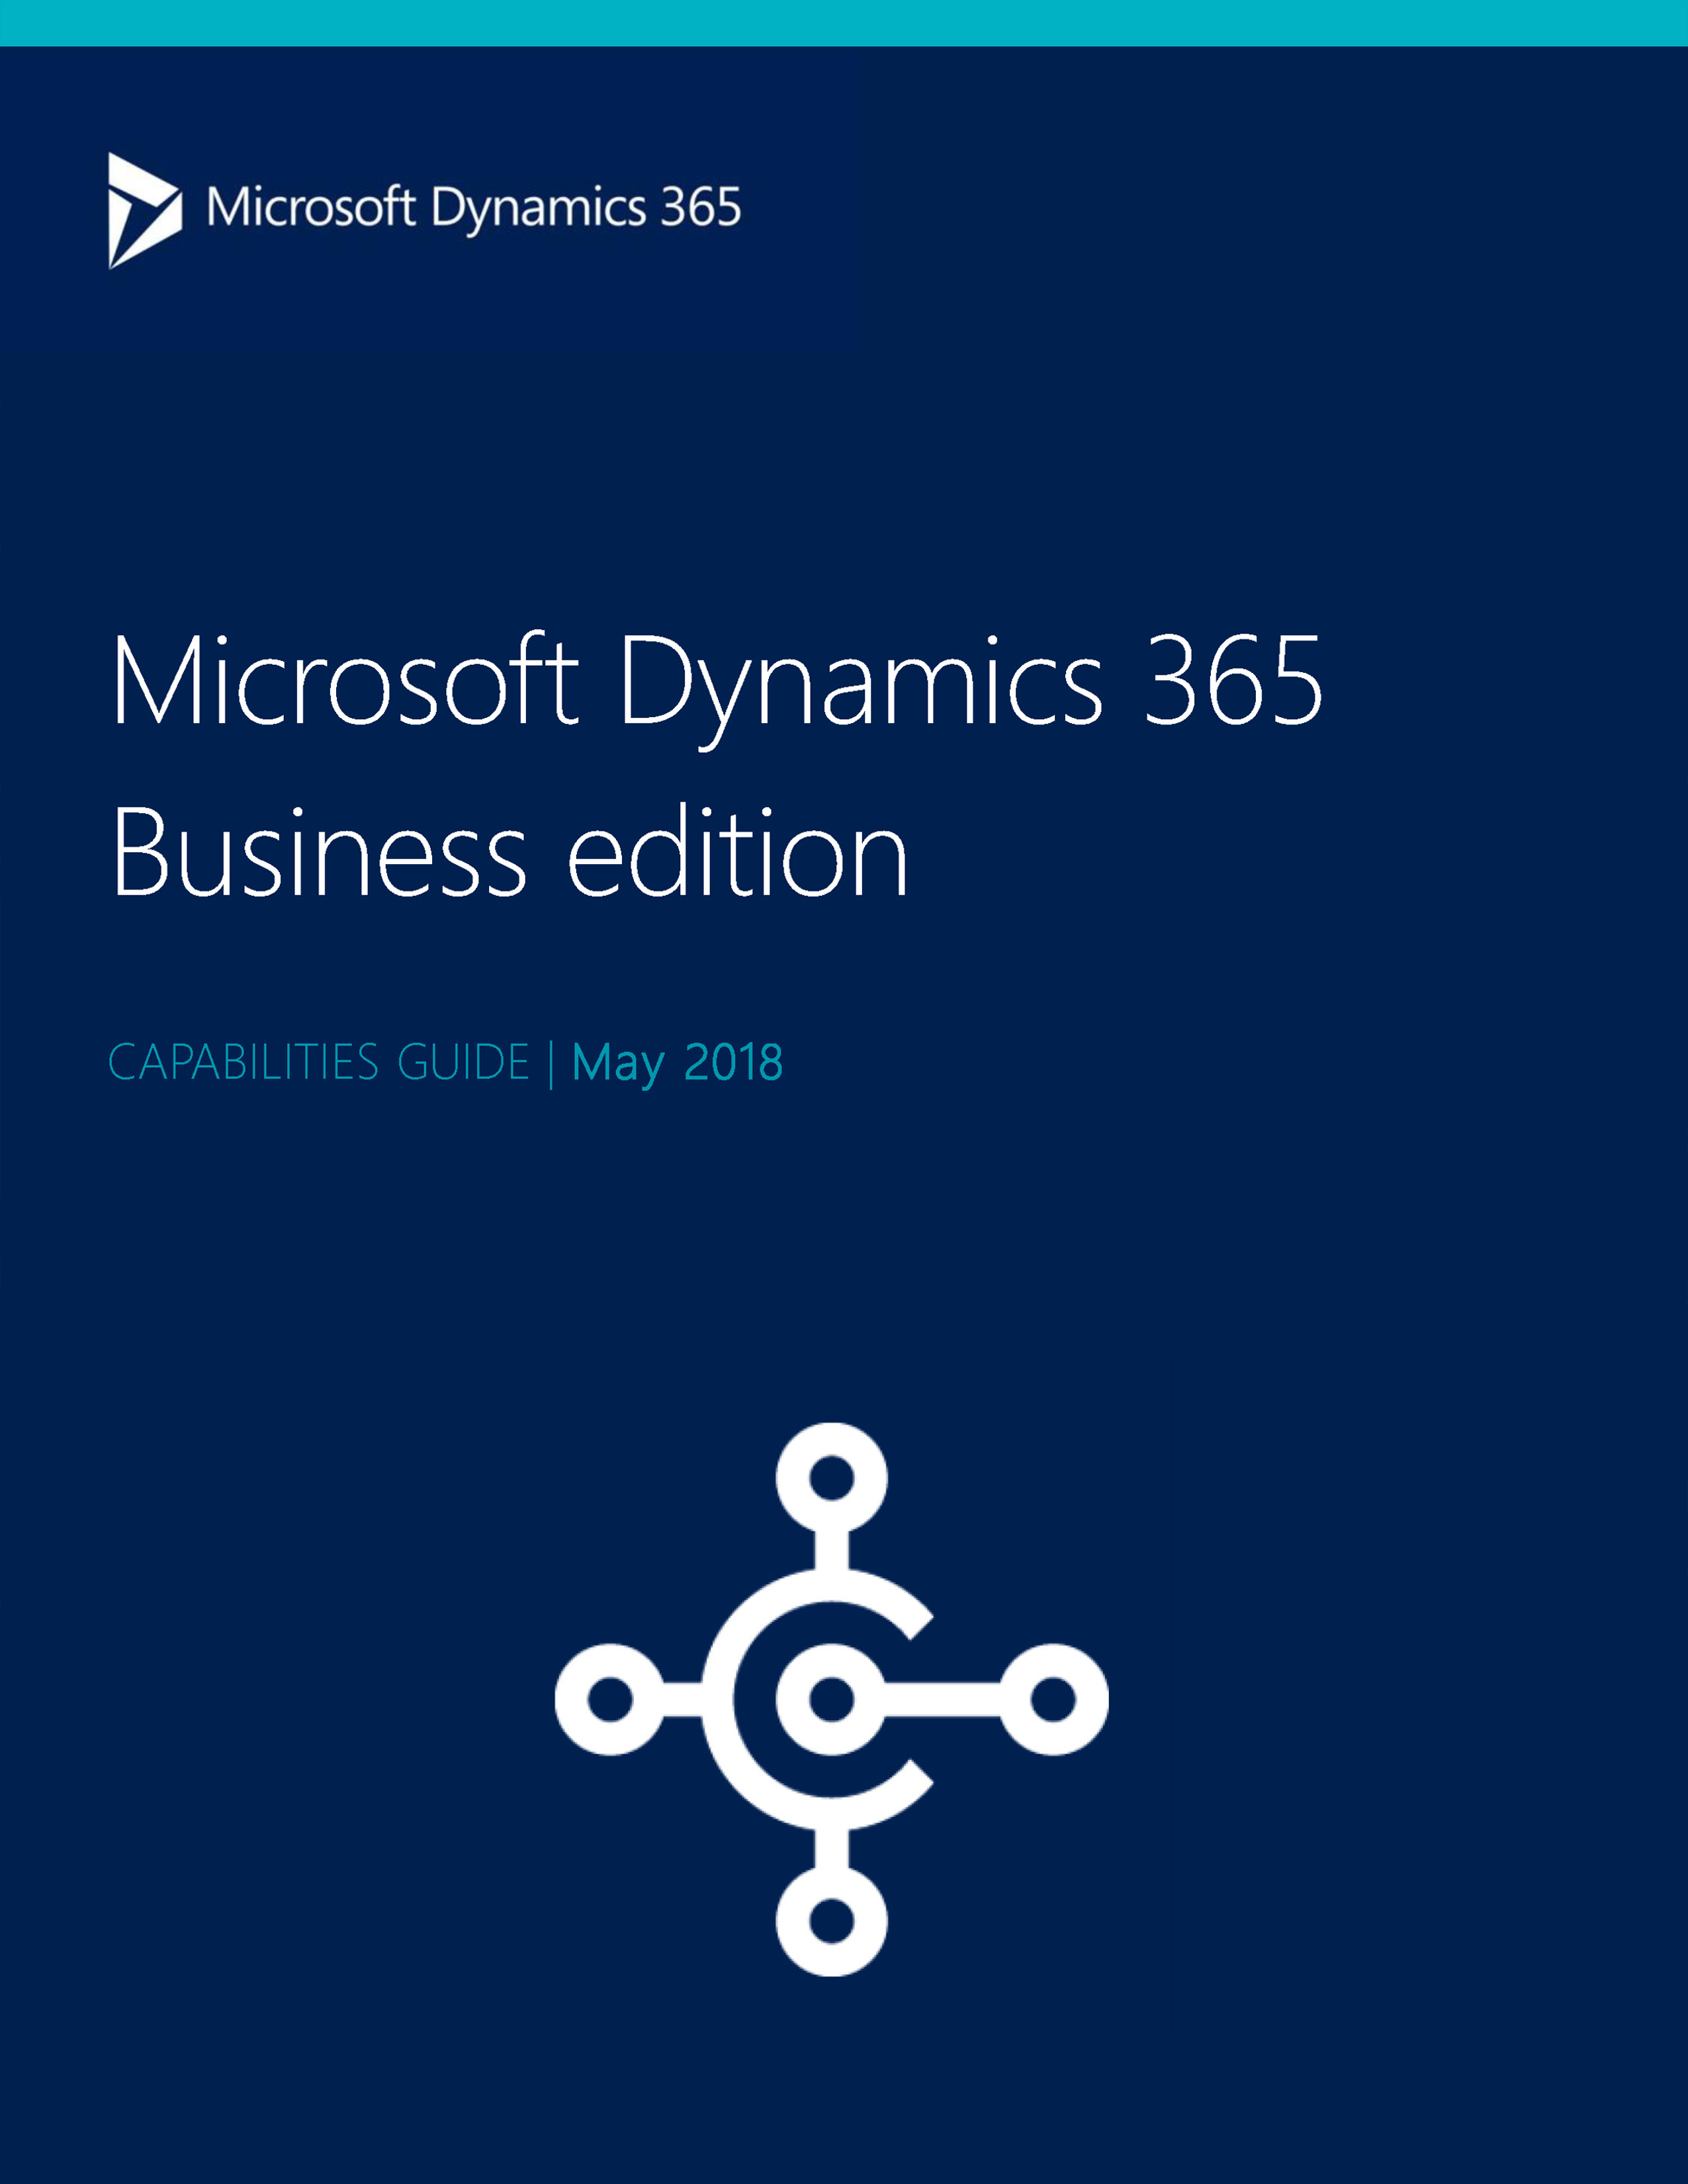 Dynamics 365 BC capabilities guide